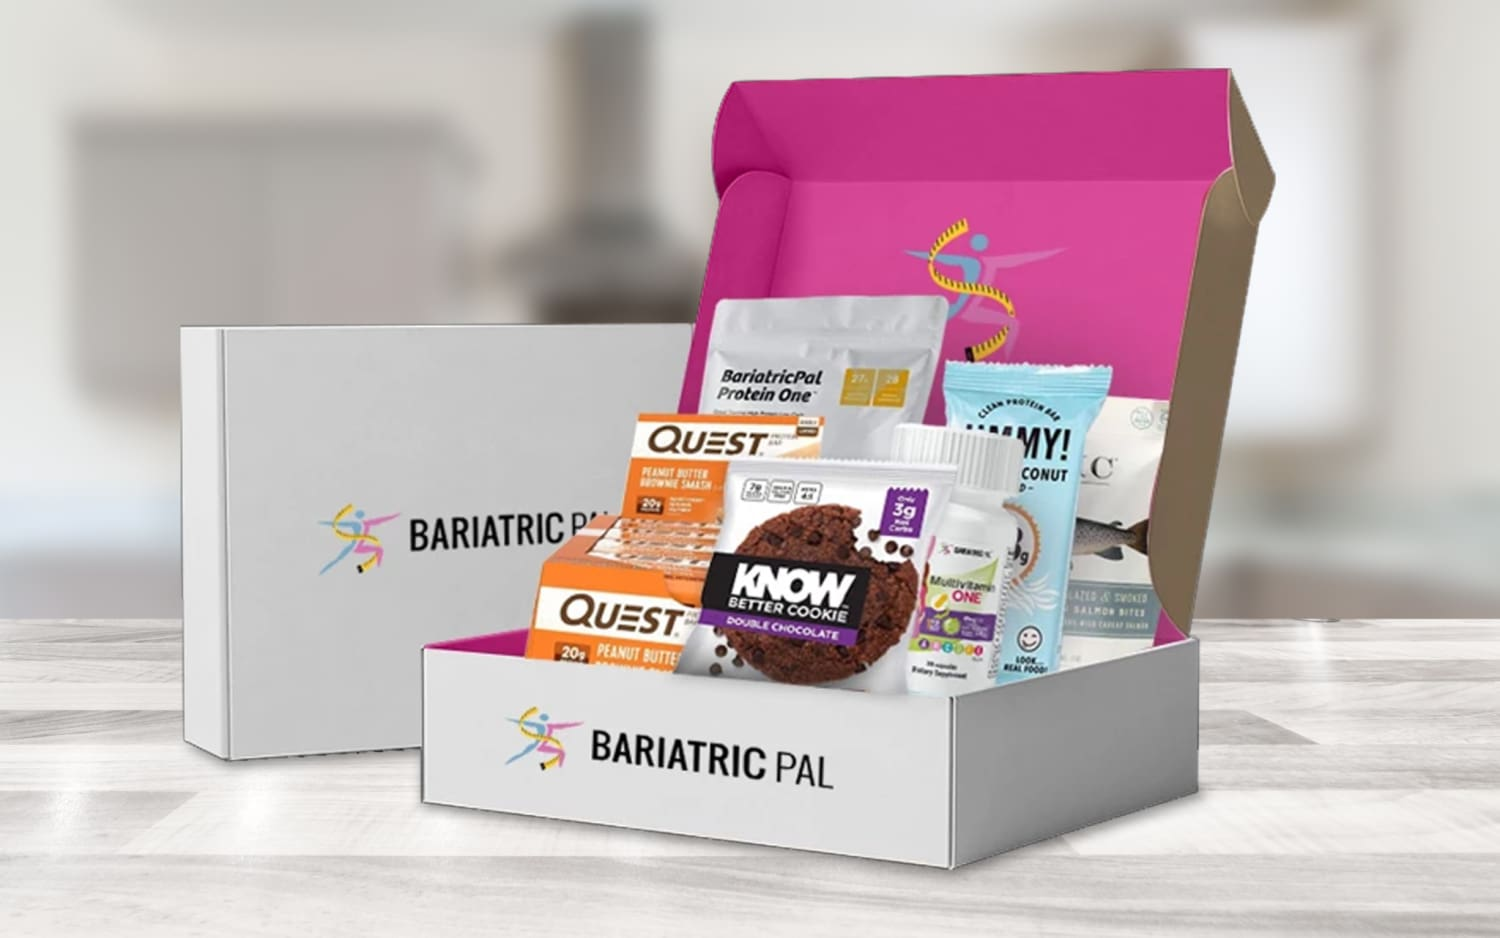 Weight Loss in a Box: Are You Ready?